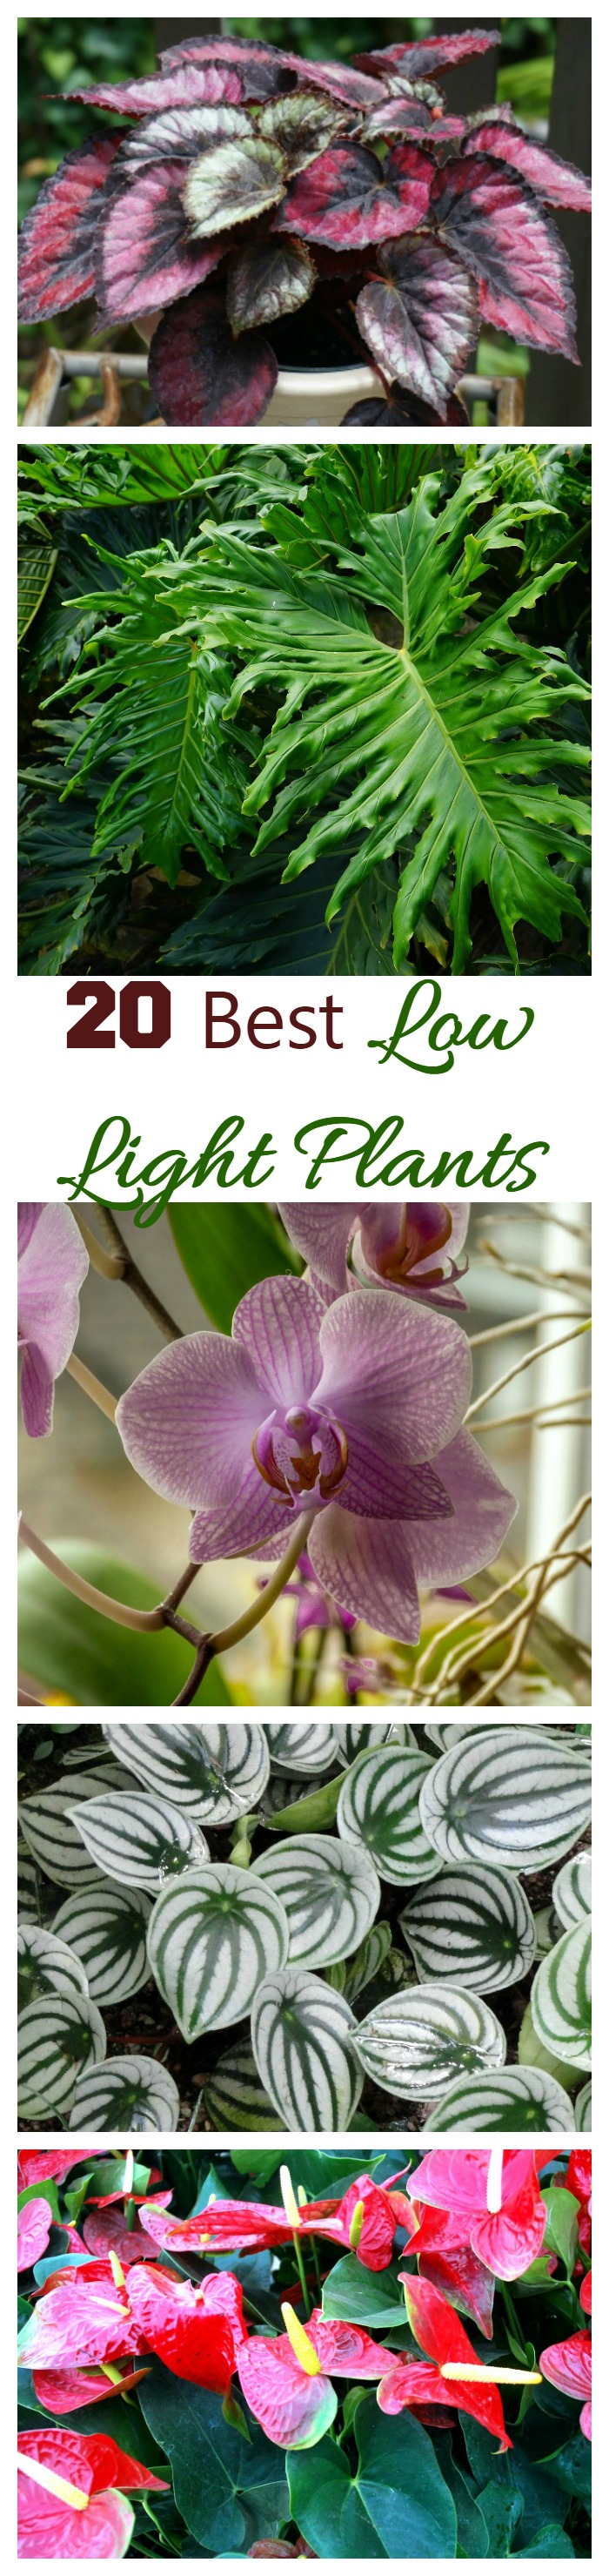 Low light indoor plants my 20 favorite house plants - Best house plants low light ...